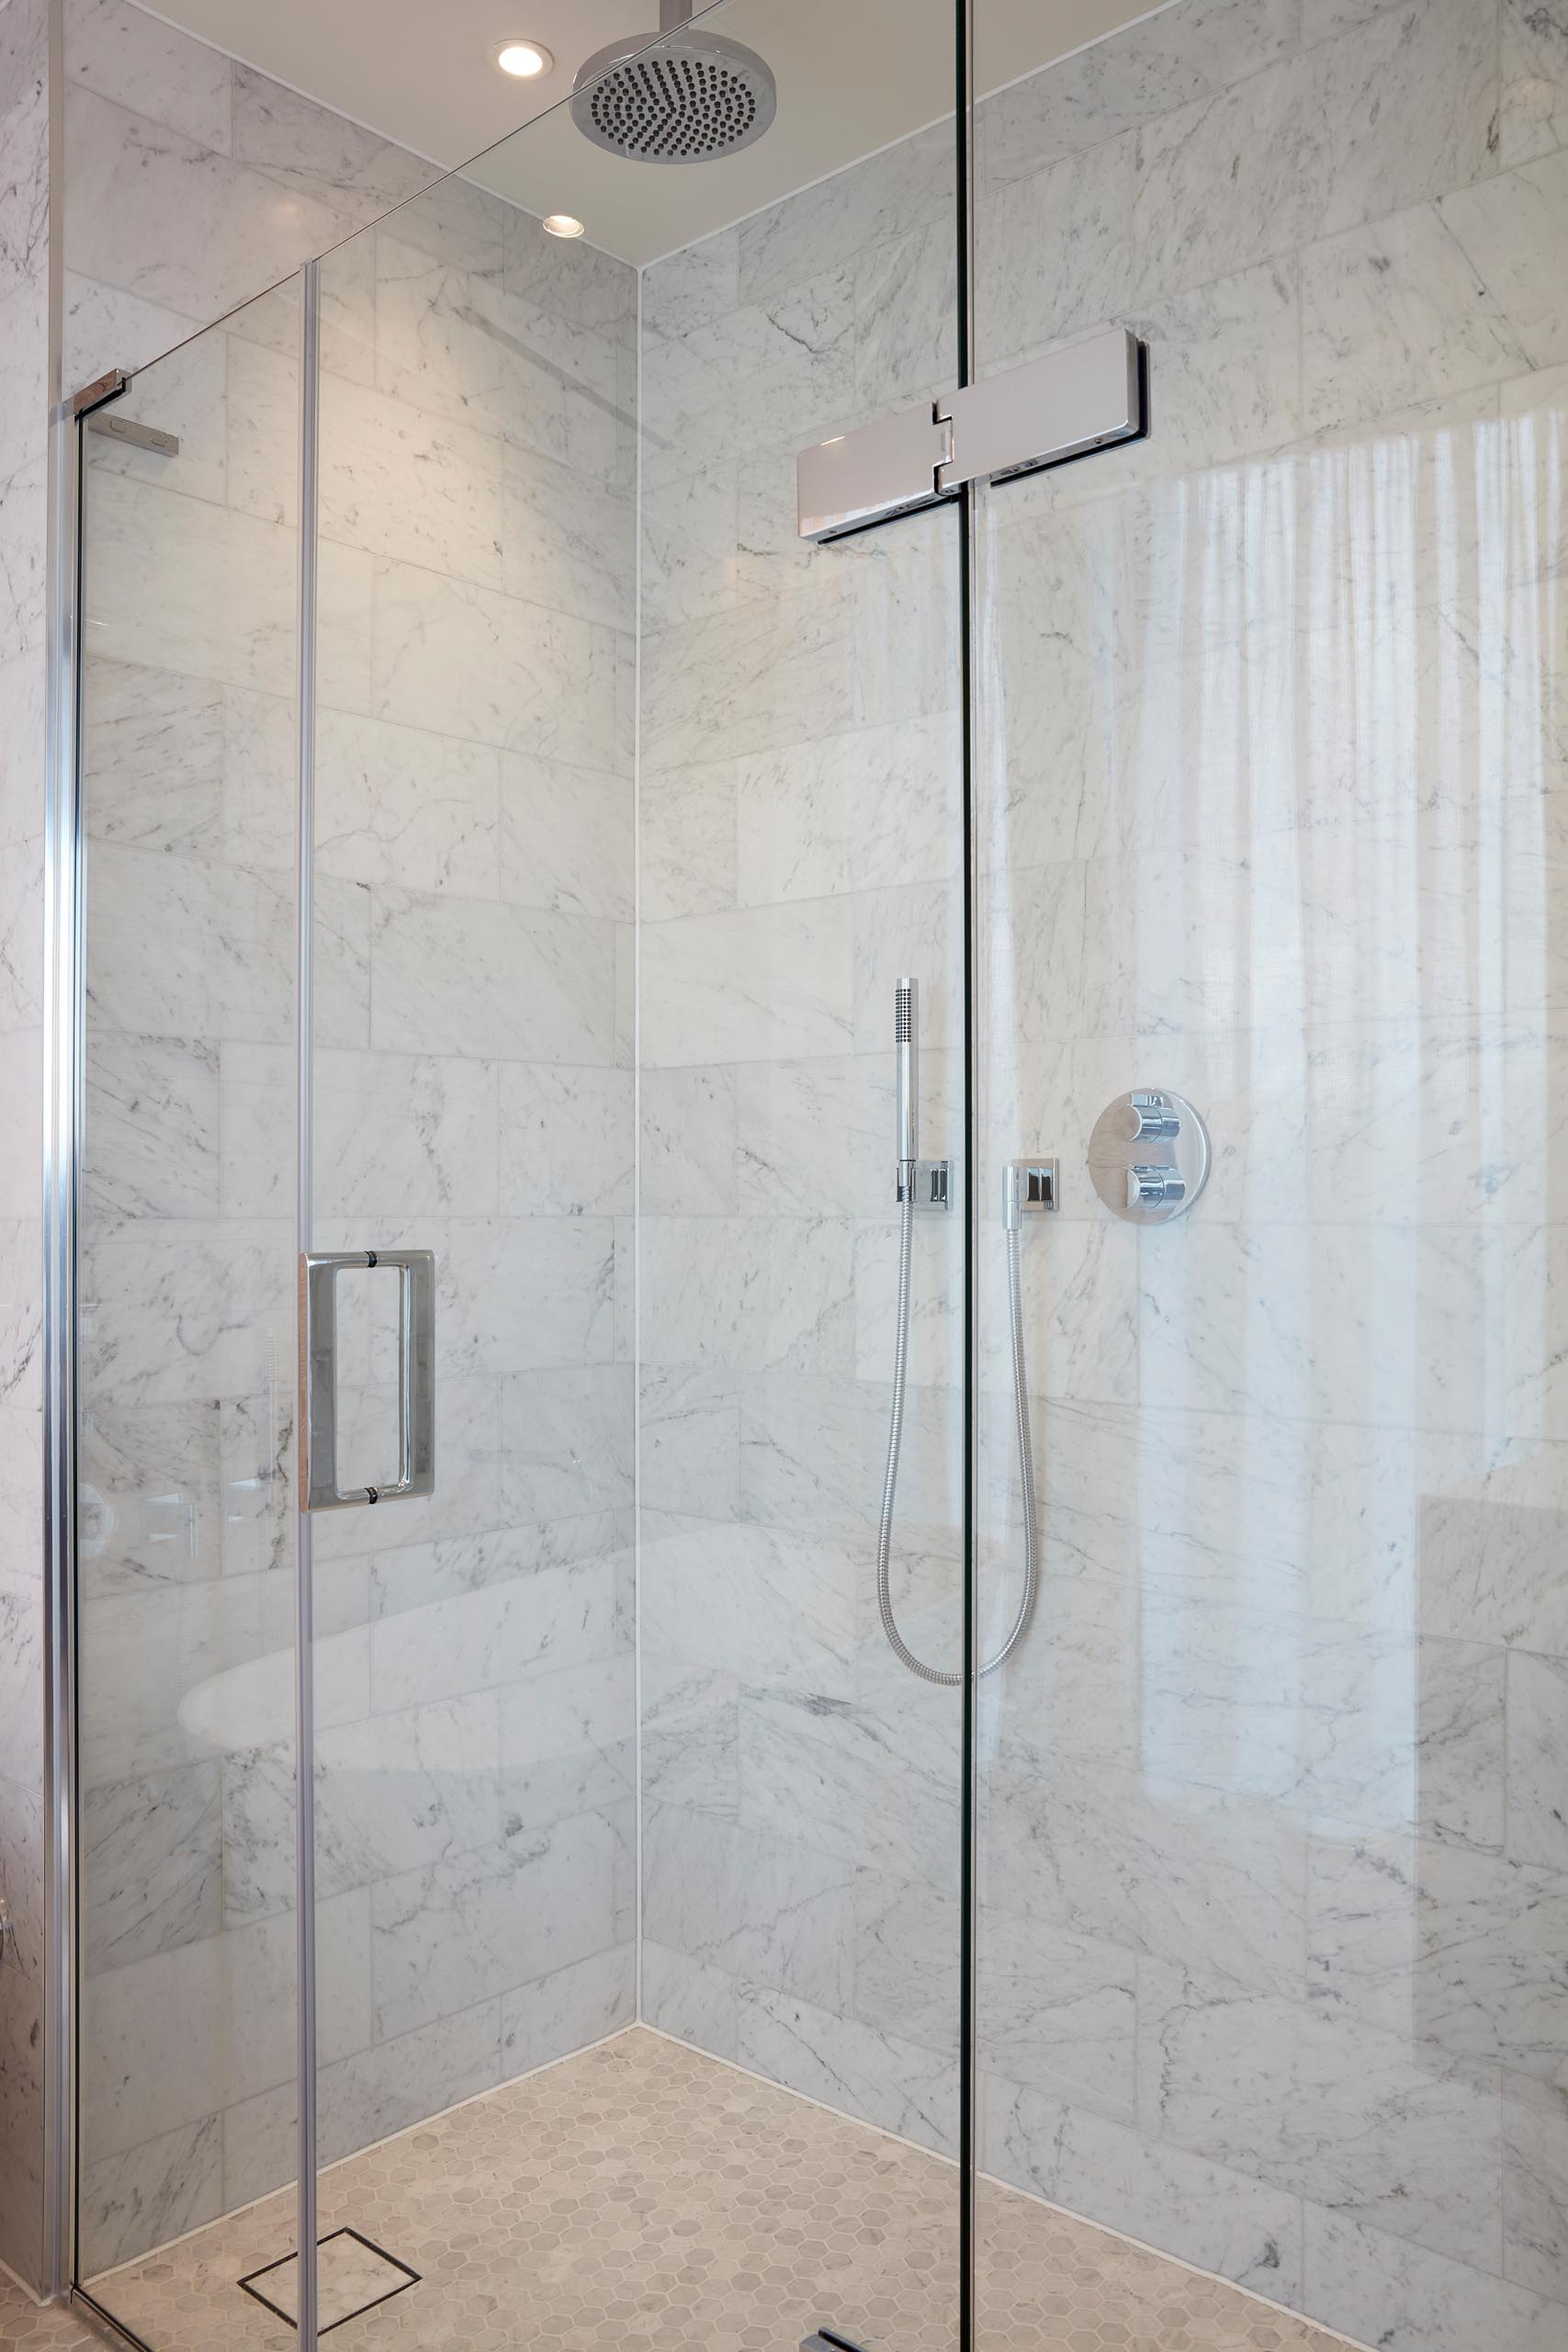 A modern walk-in shower with large gray tiles.